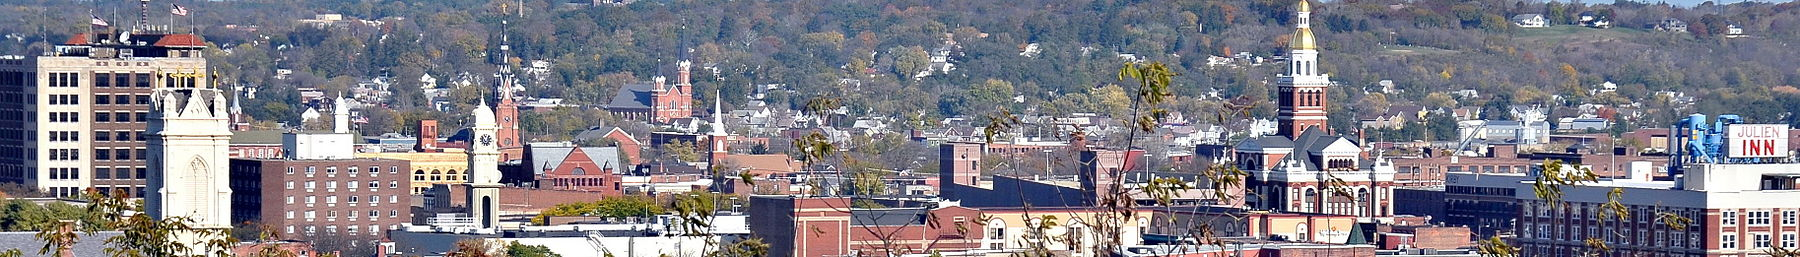 Dubuque Iowa panorama banner.jpg